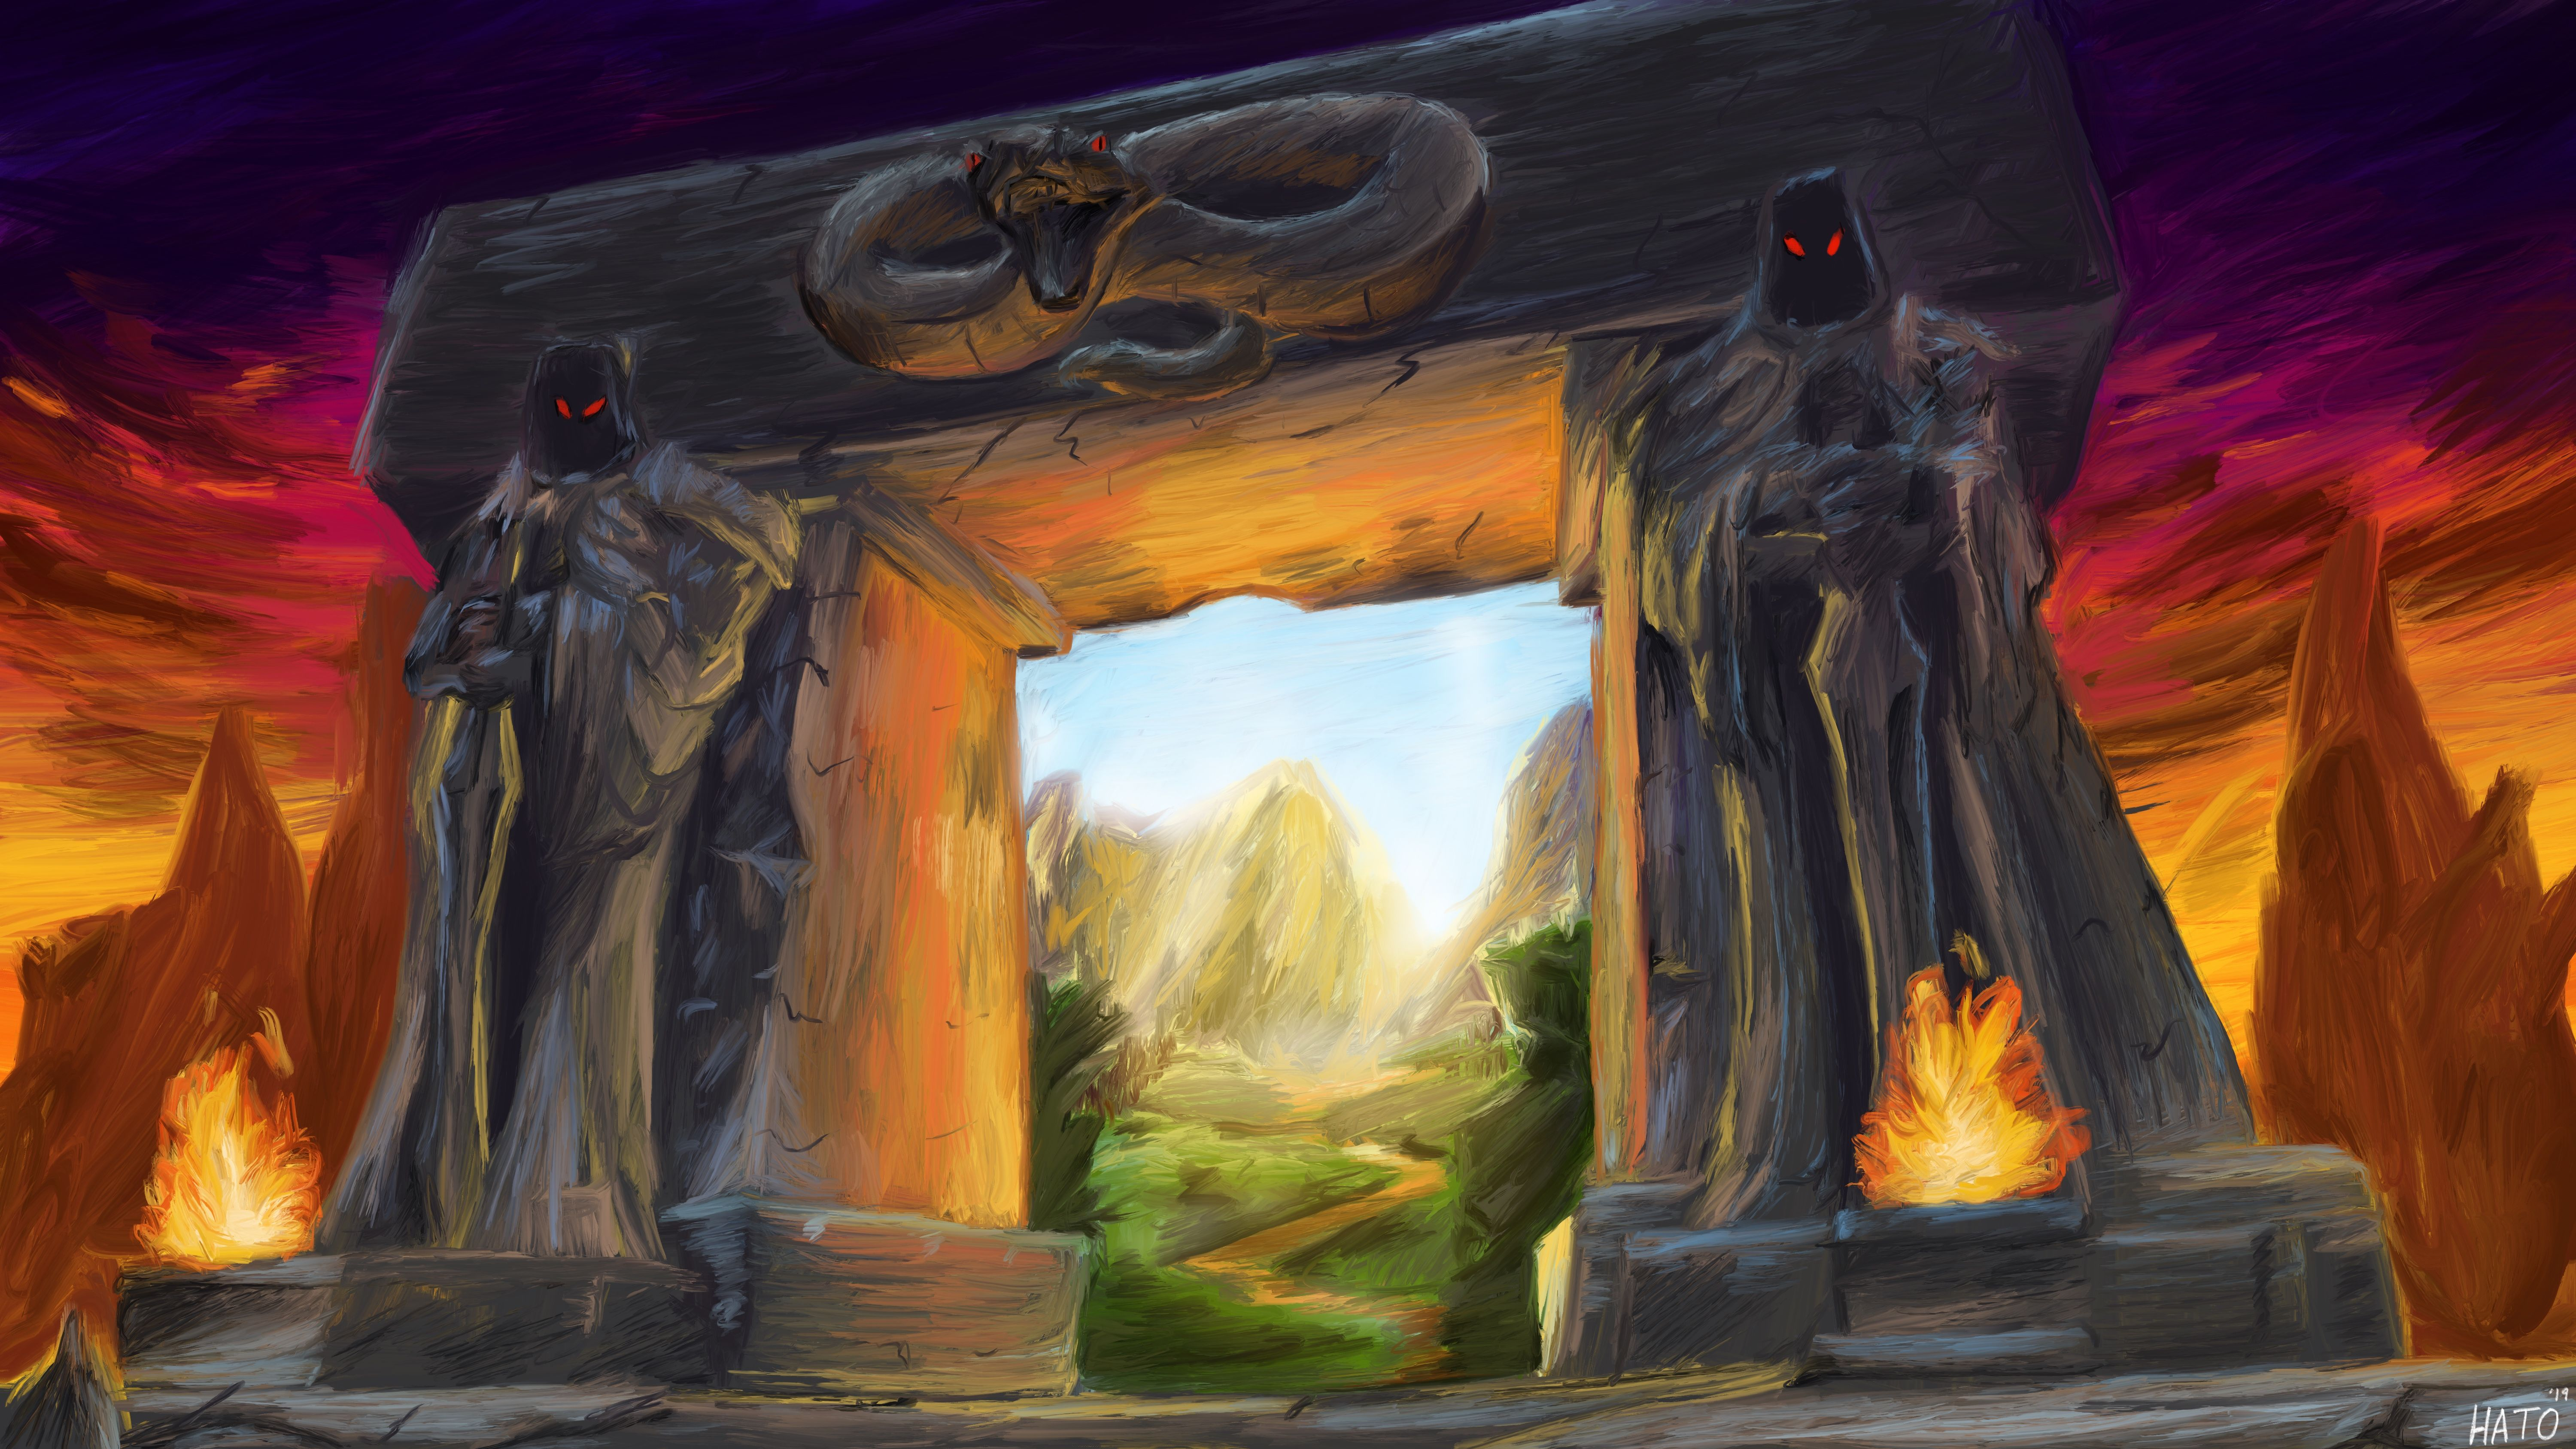 In Celebration Of Wow Classic A Painting Of The Login Screen Credit To U Sharkrap World Of Warcraft Wallpaper World Of Warcraft World Of Warcraft Characters